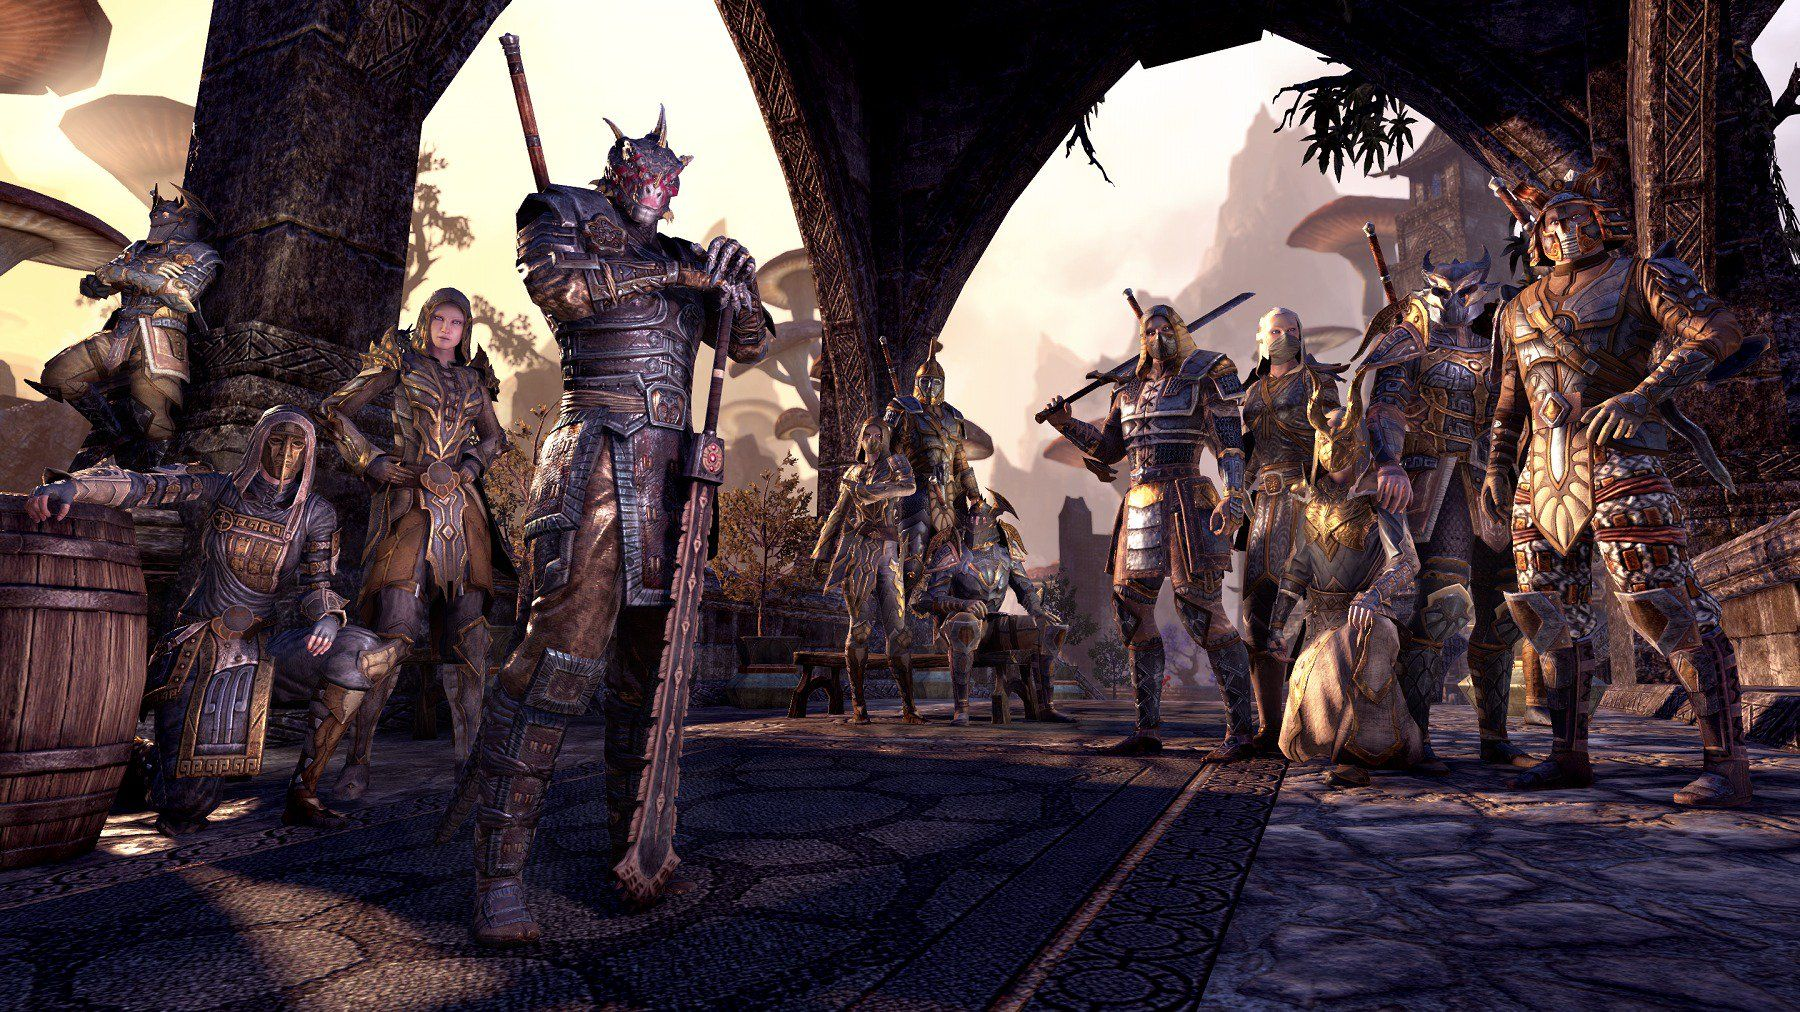 Morrowind Announced As The Next Expansion To The Elder